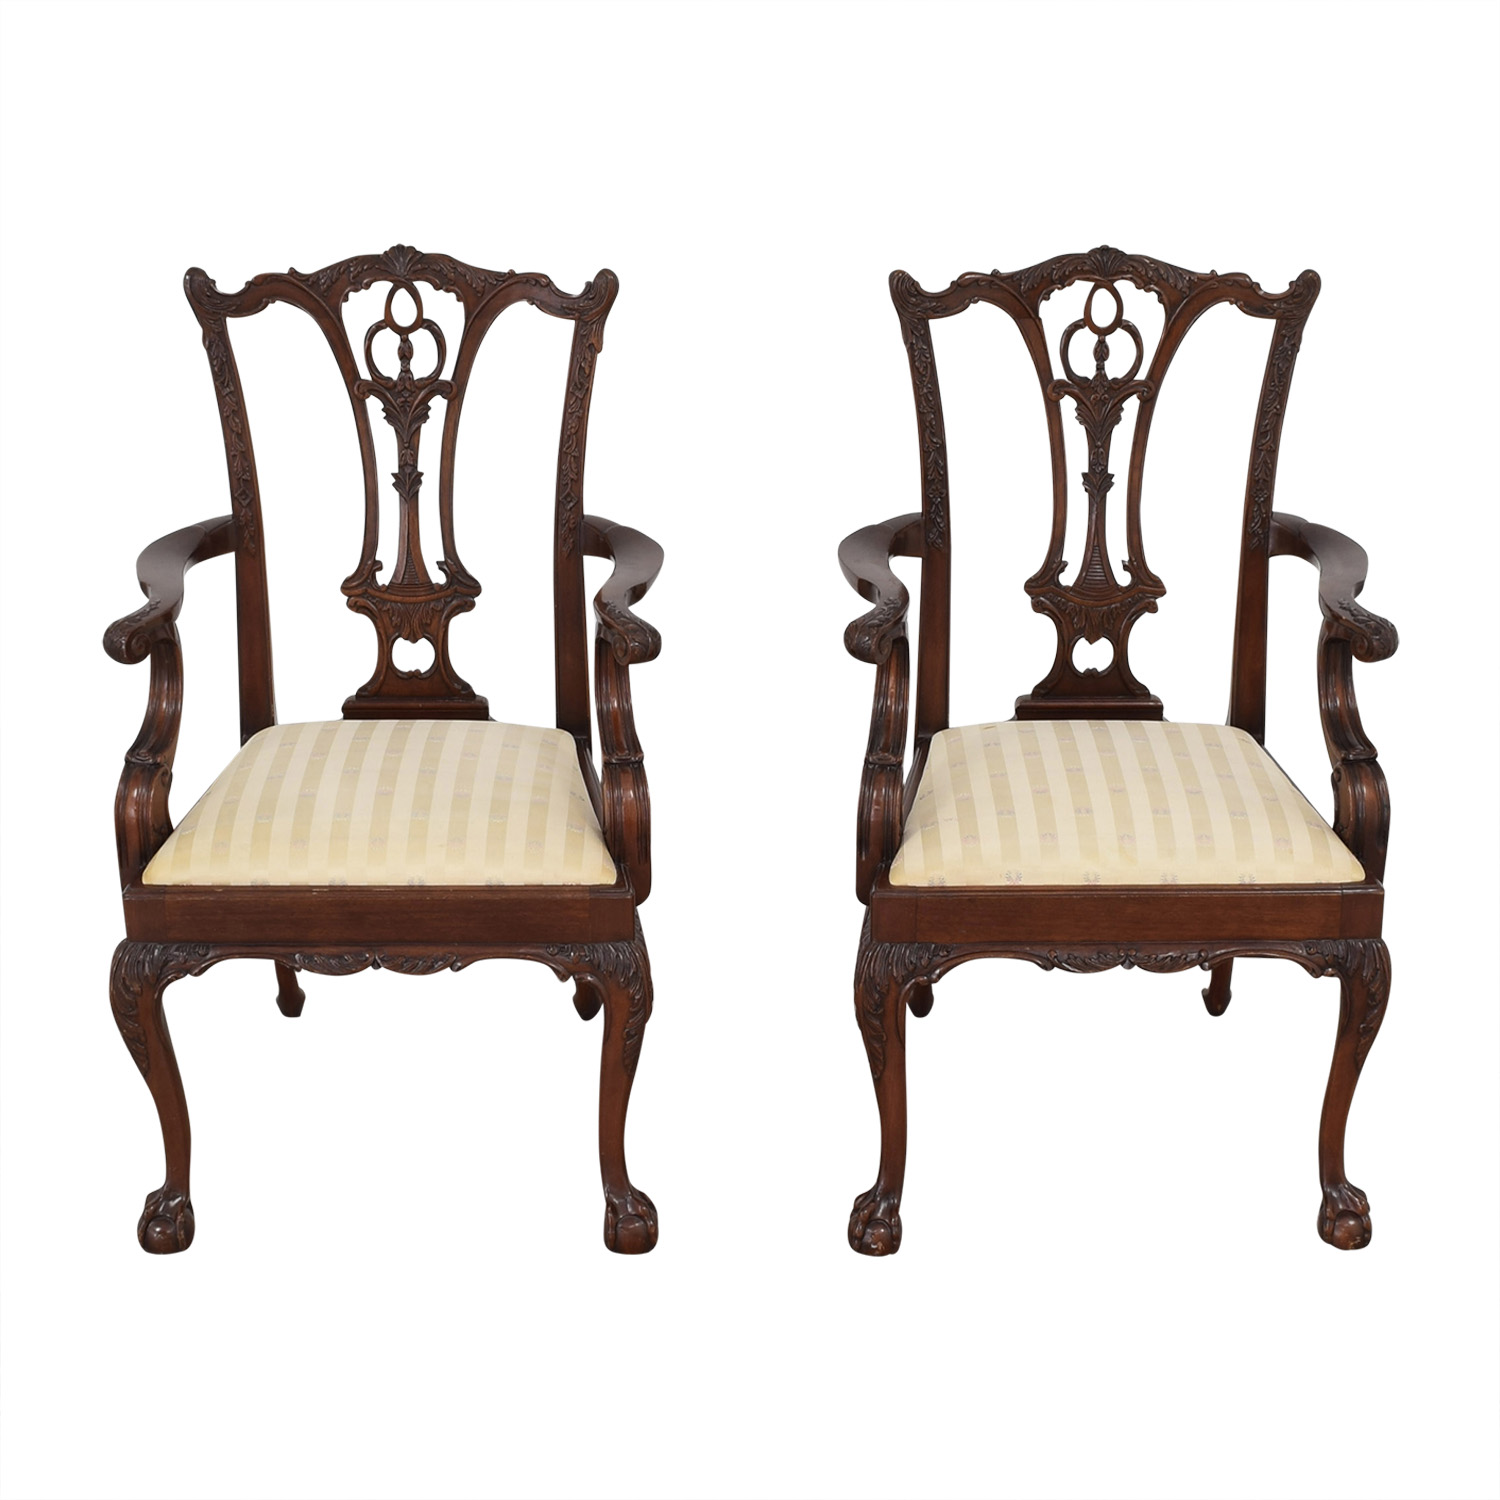 shop Hickory Furniture Upholstered Dining Chairs Macy's Dining Chairs